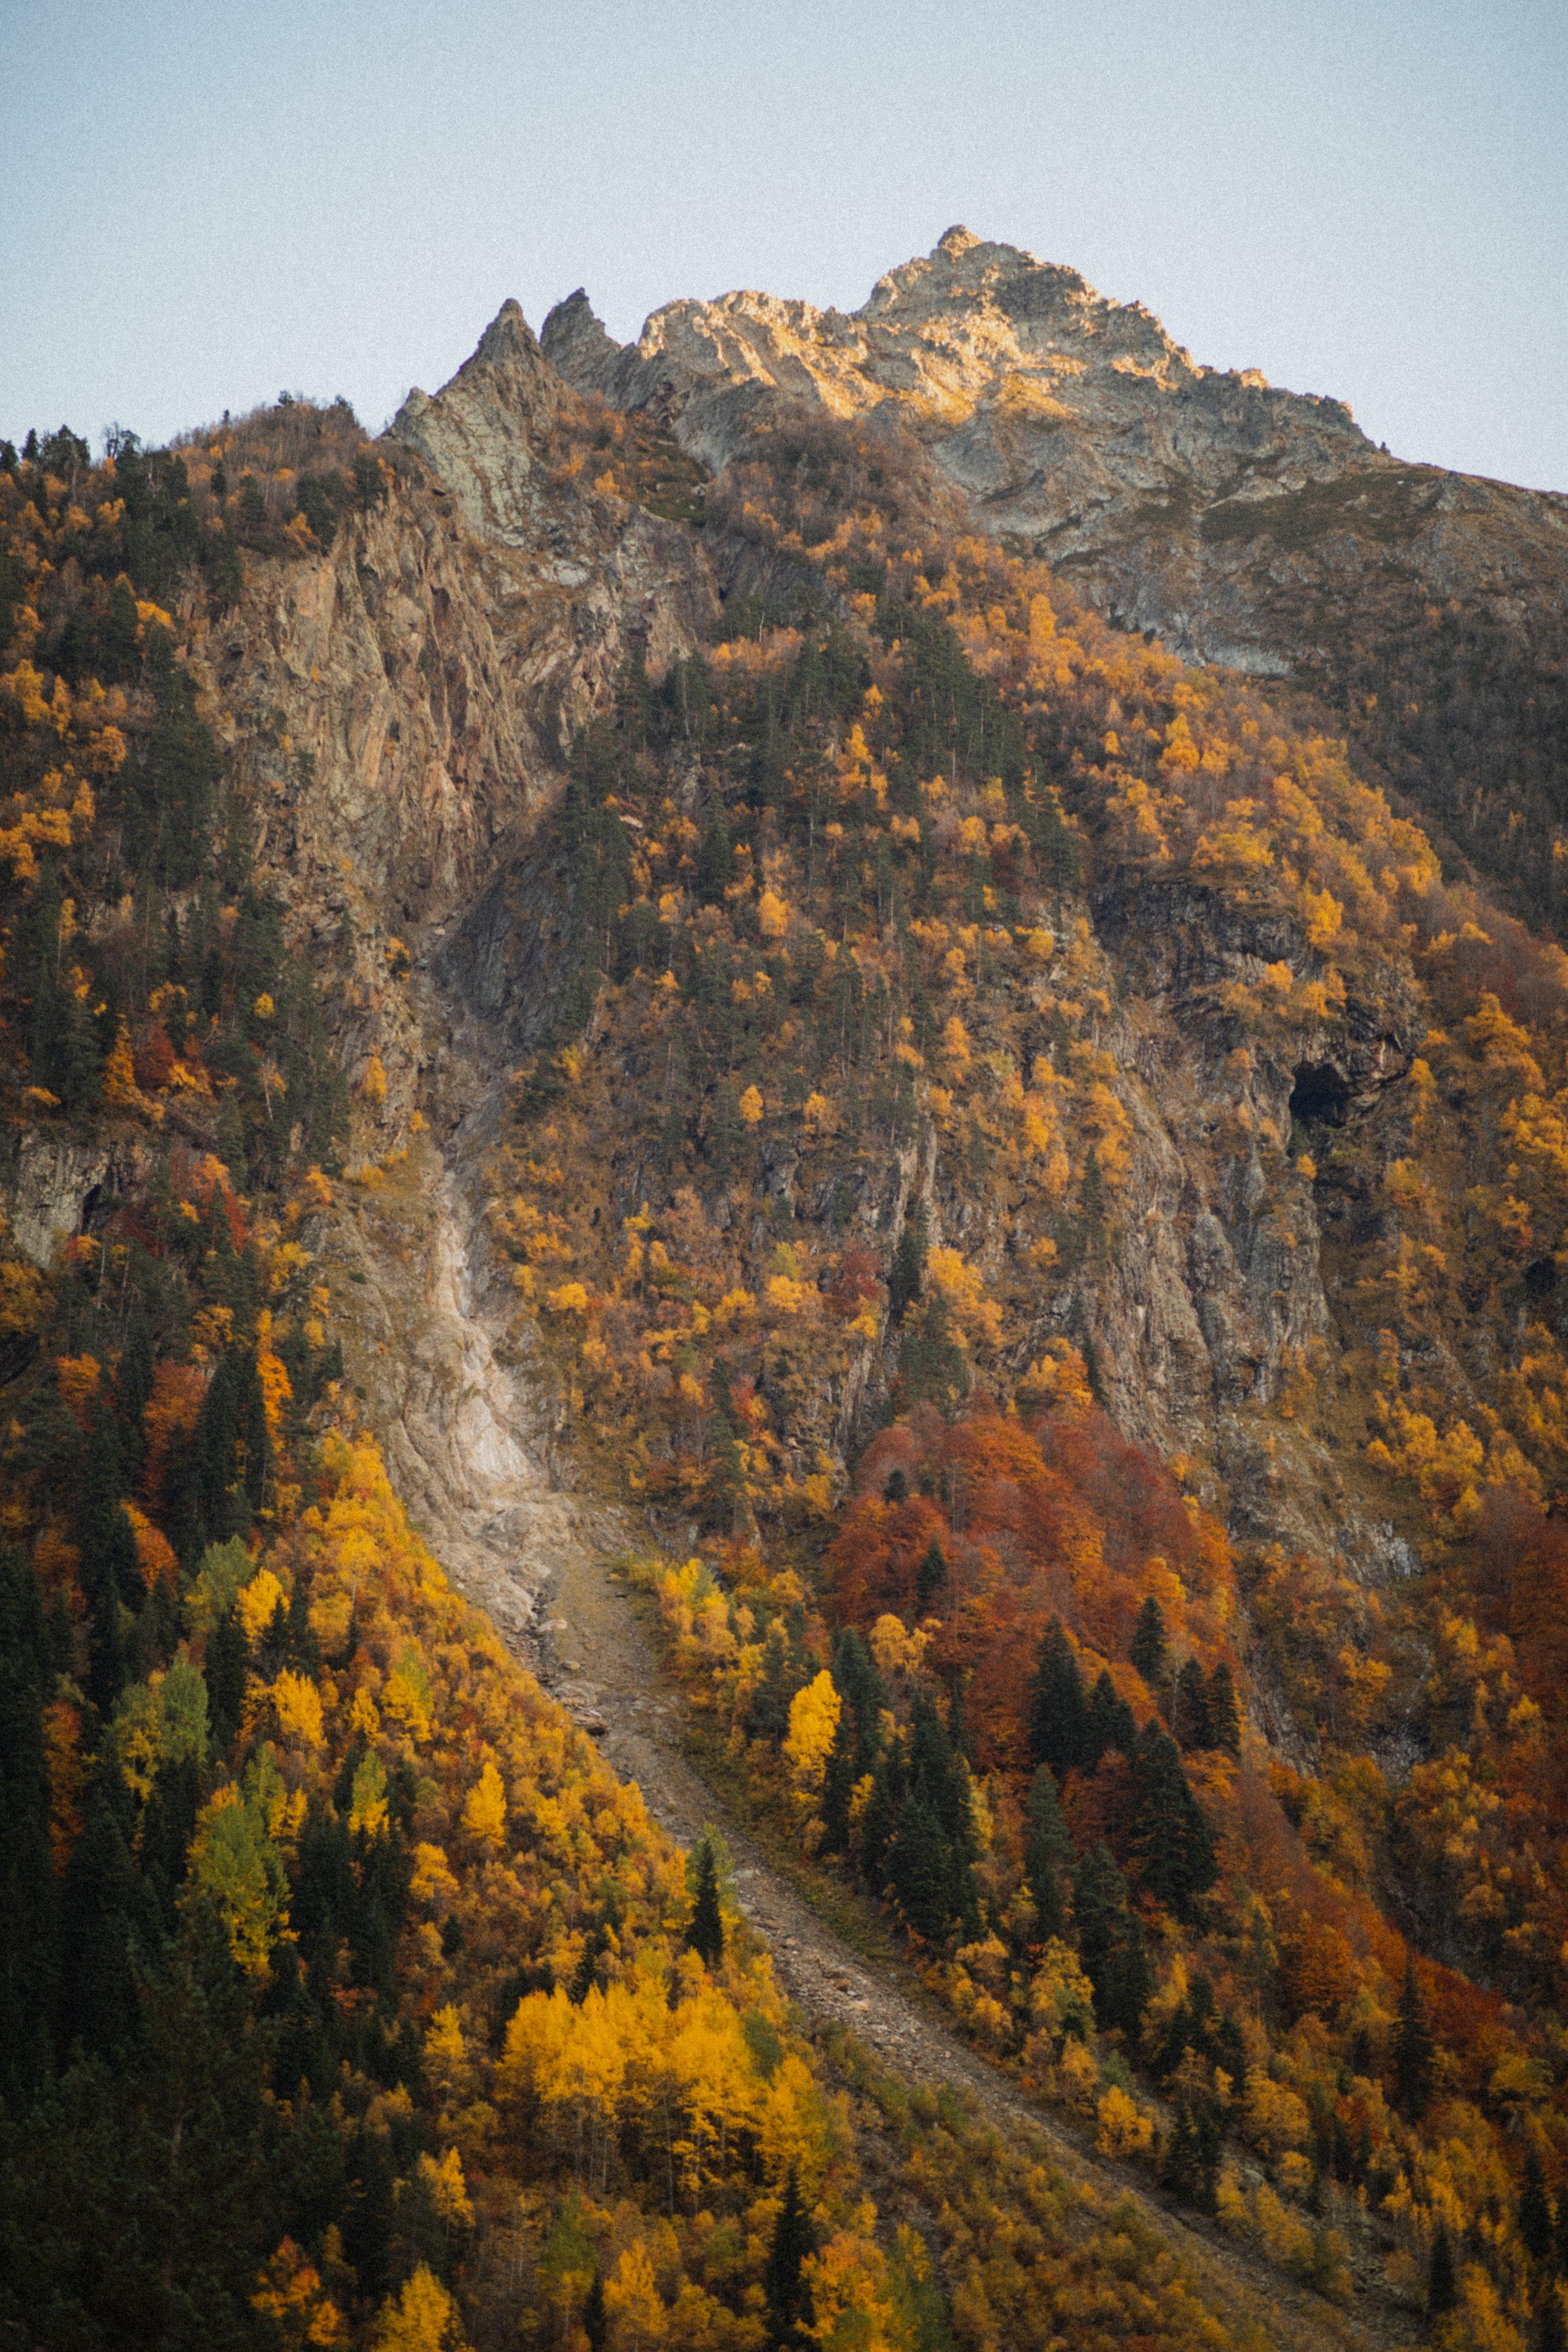 122782 download wallpaper Nature, Rocks, Vertex, Top, Trees, Autumn screensavers and pictures for free